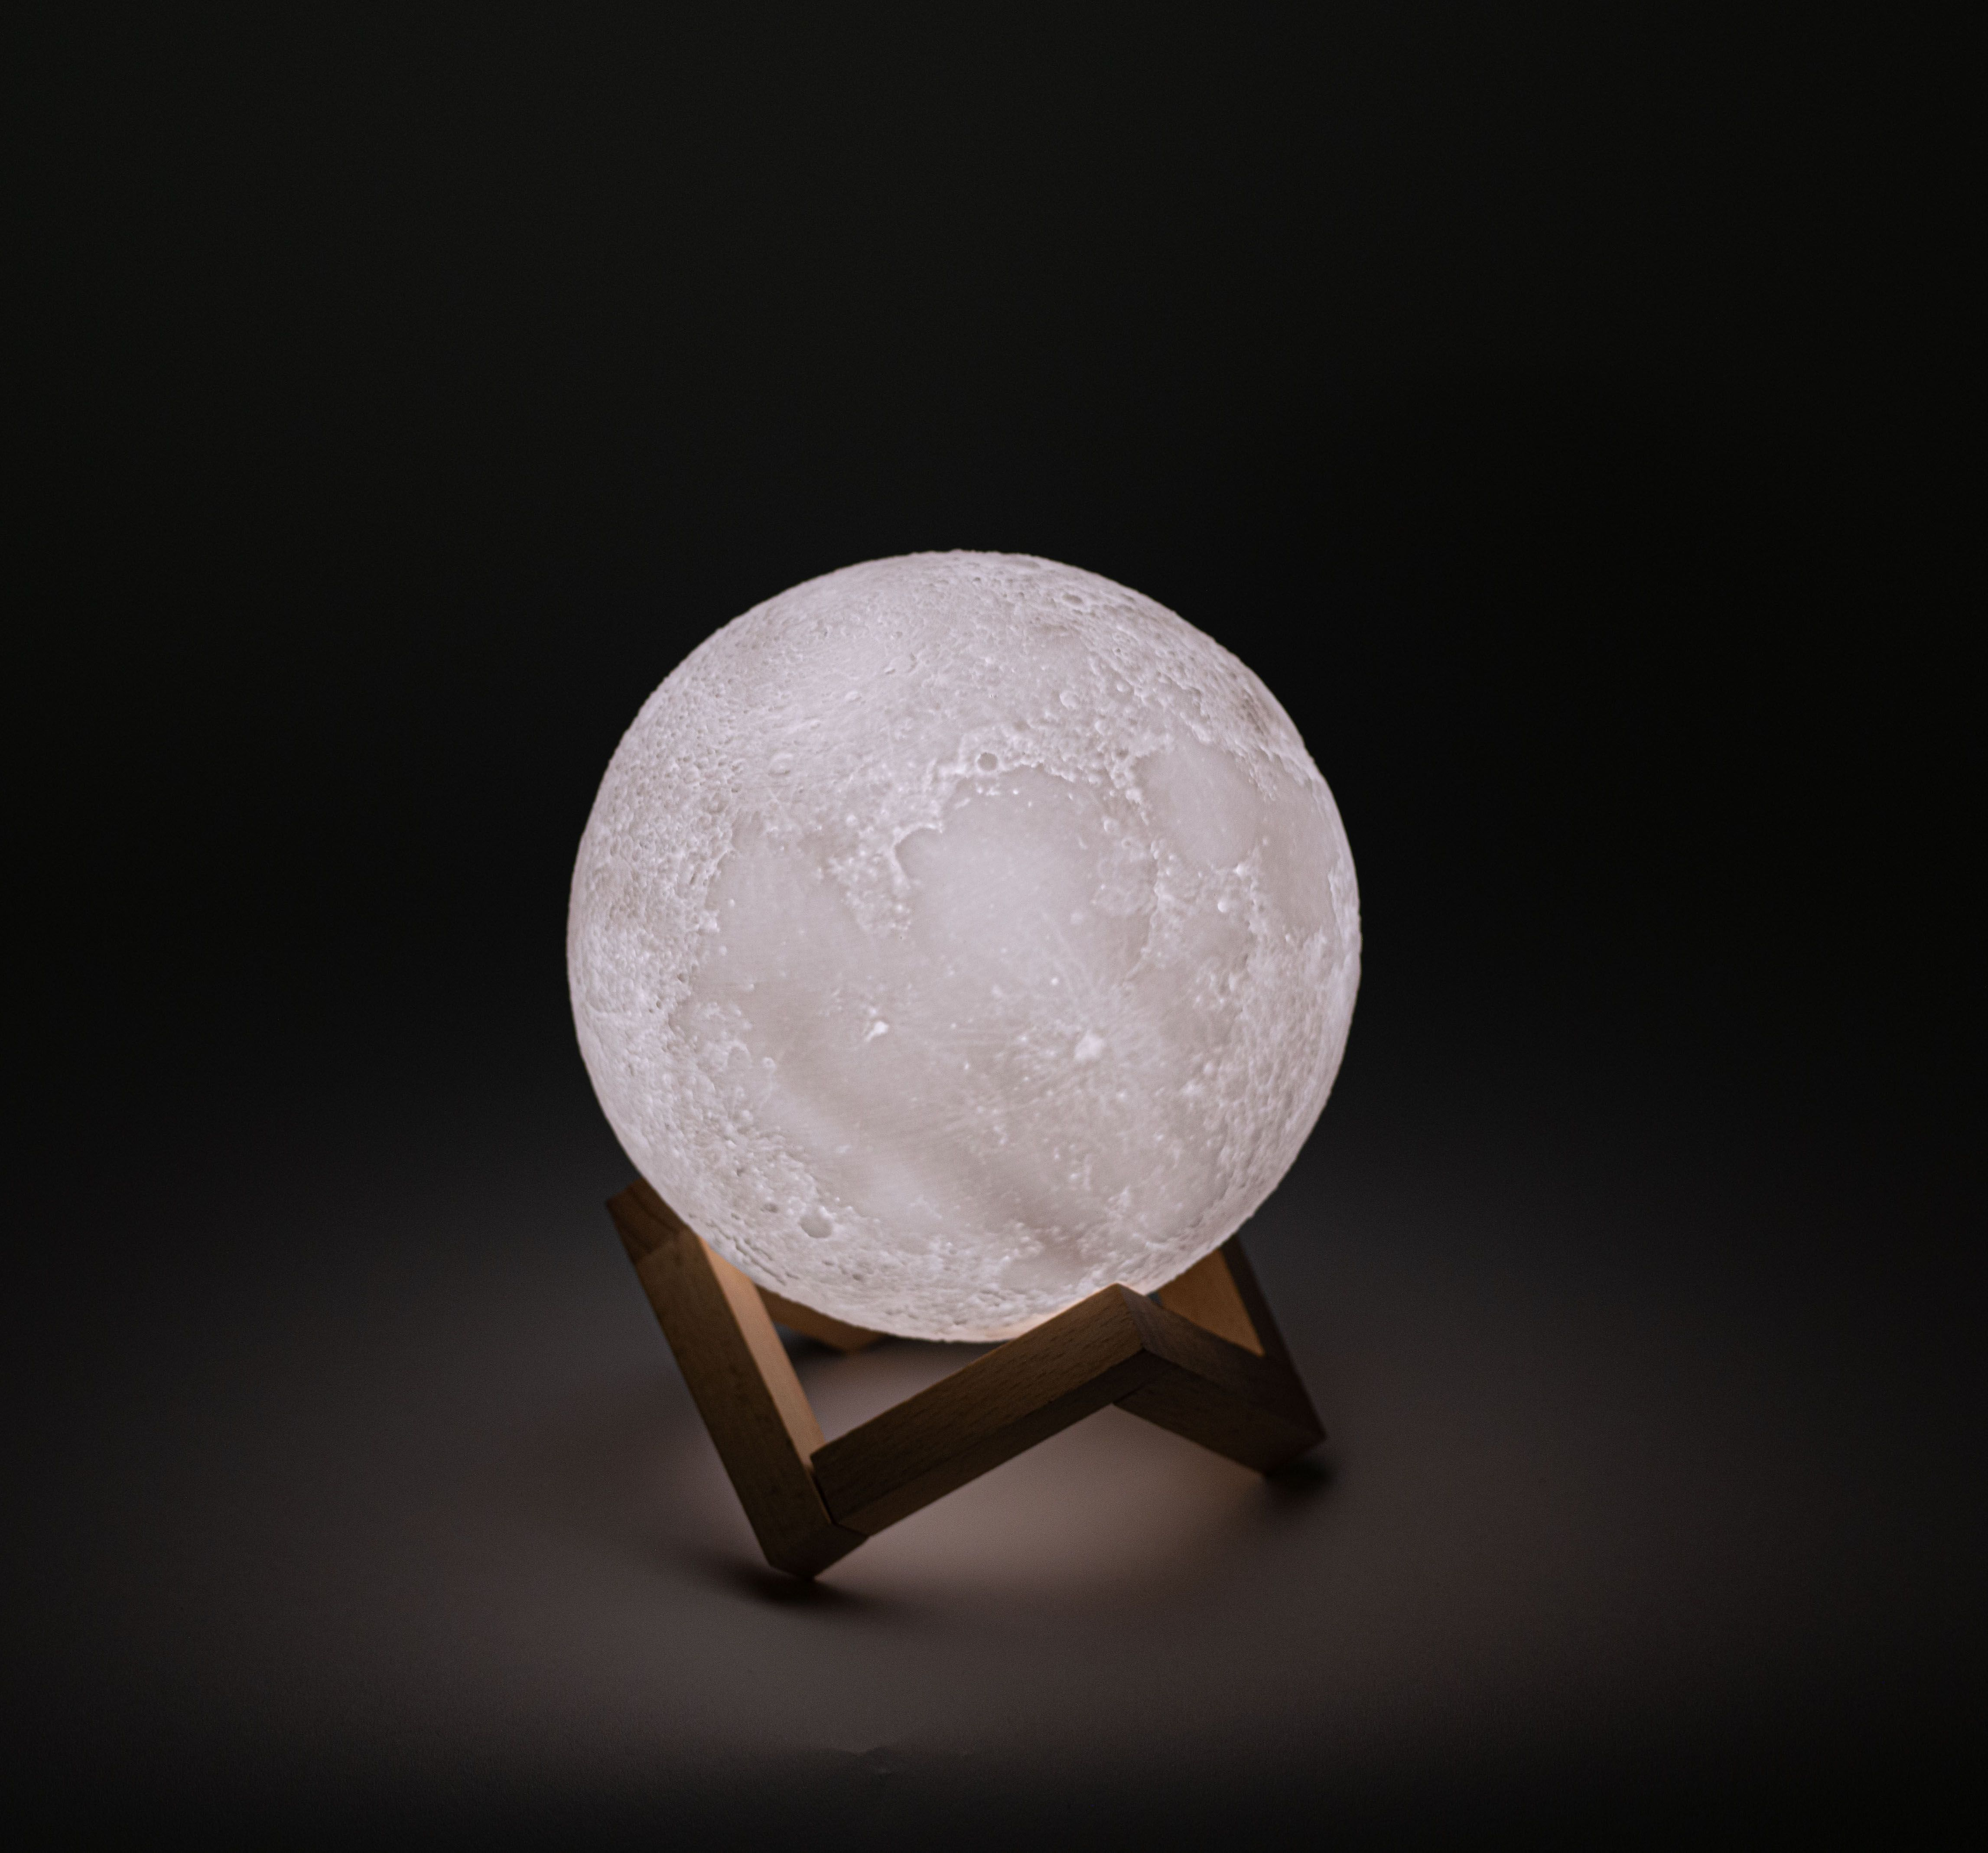 3d Printed Moon Lamp With Stand 6 Inches Dimmable Rechargeable Touch Led Night Light Walmart Com Led Night Light Night Light Lamp